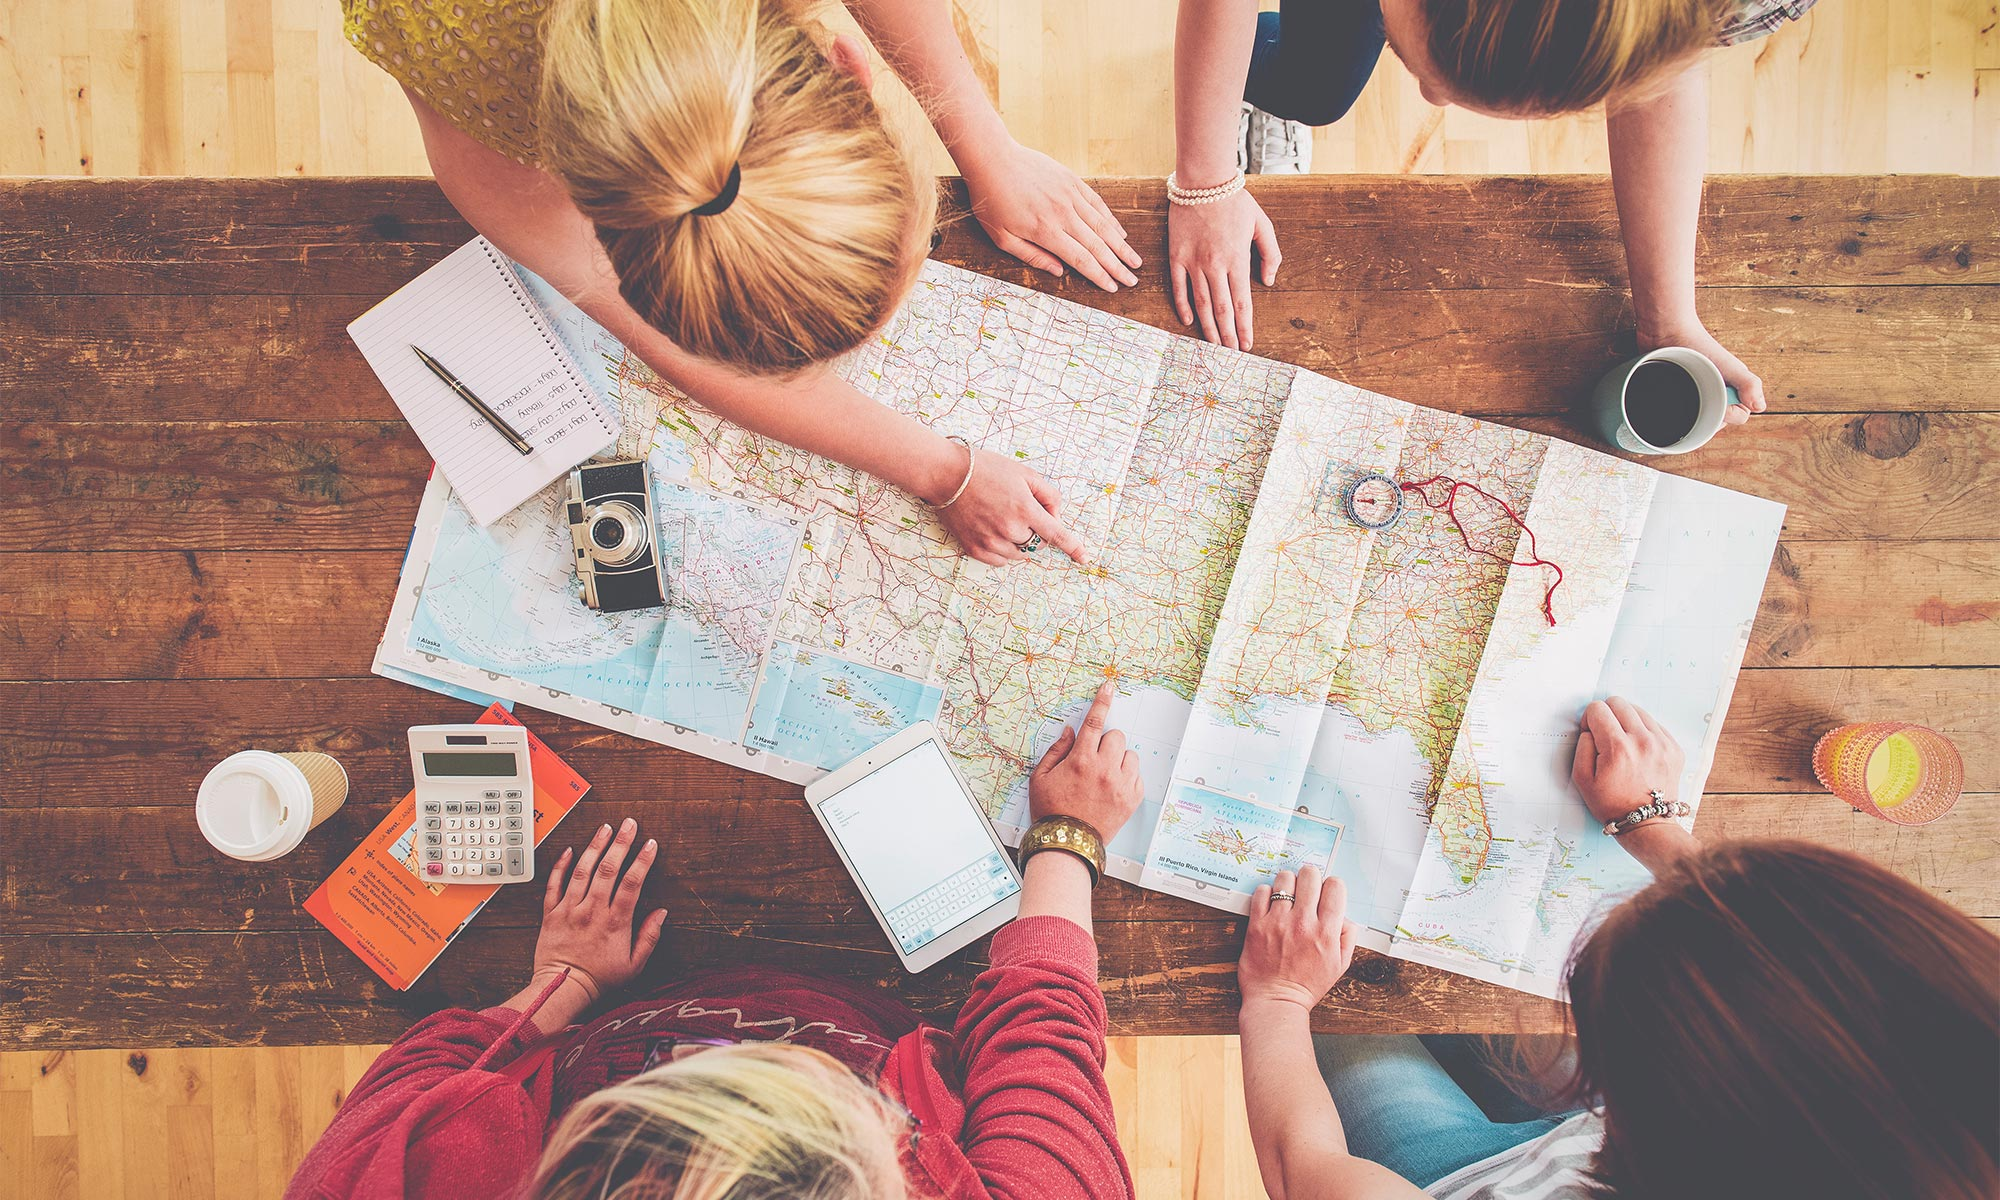 Women planning trip with map on wooden table.